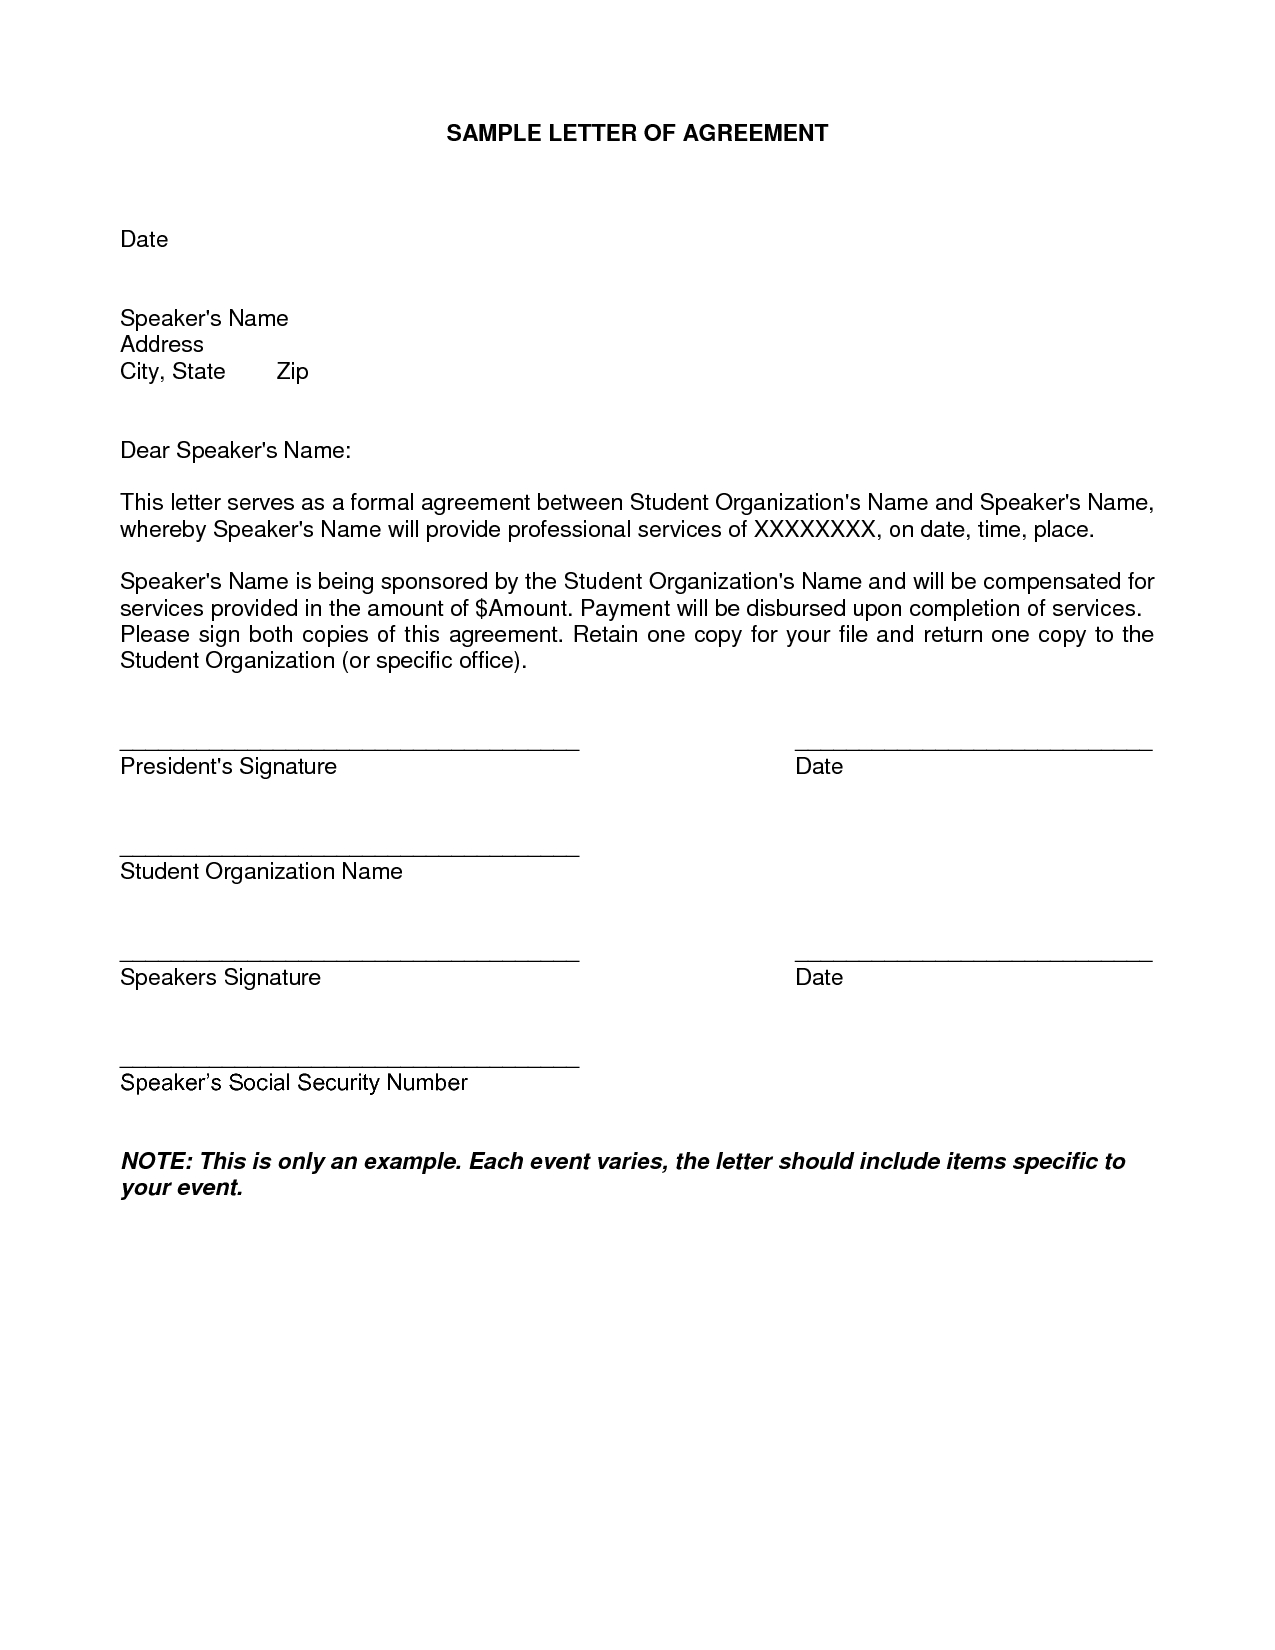 Contract Letter Template - Letter Agreement Samples Template Seeabruzzo Letter Of